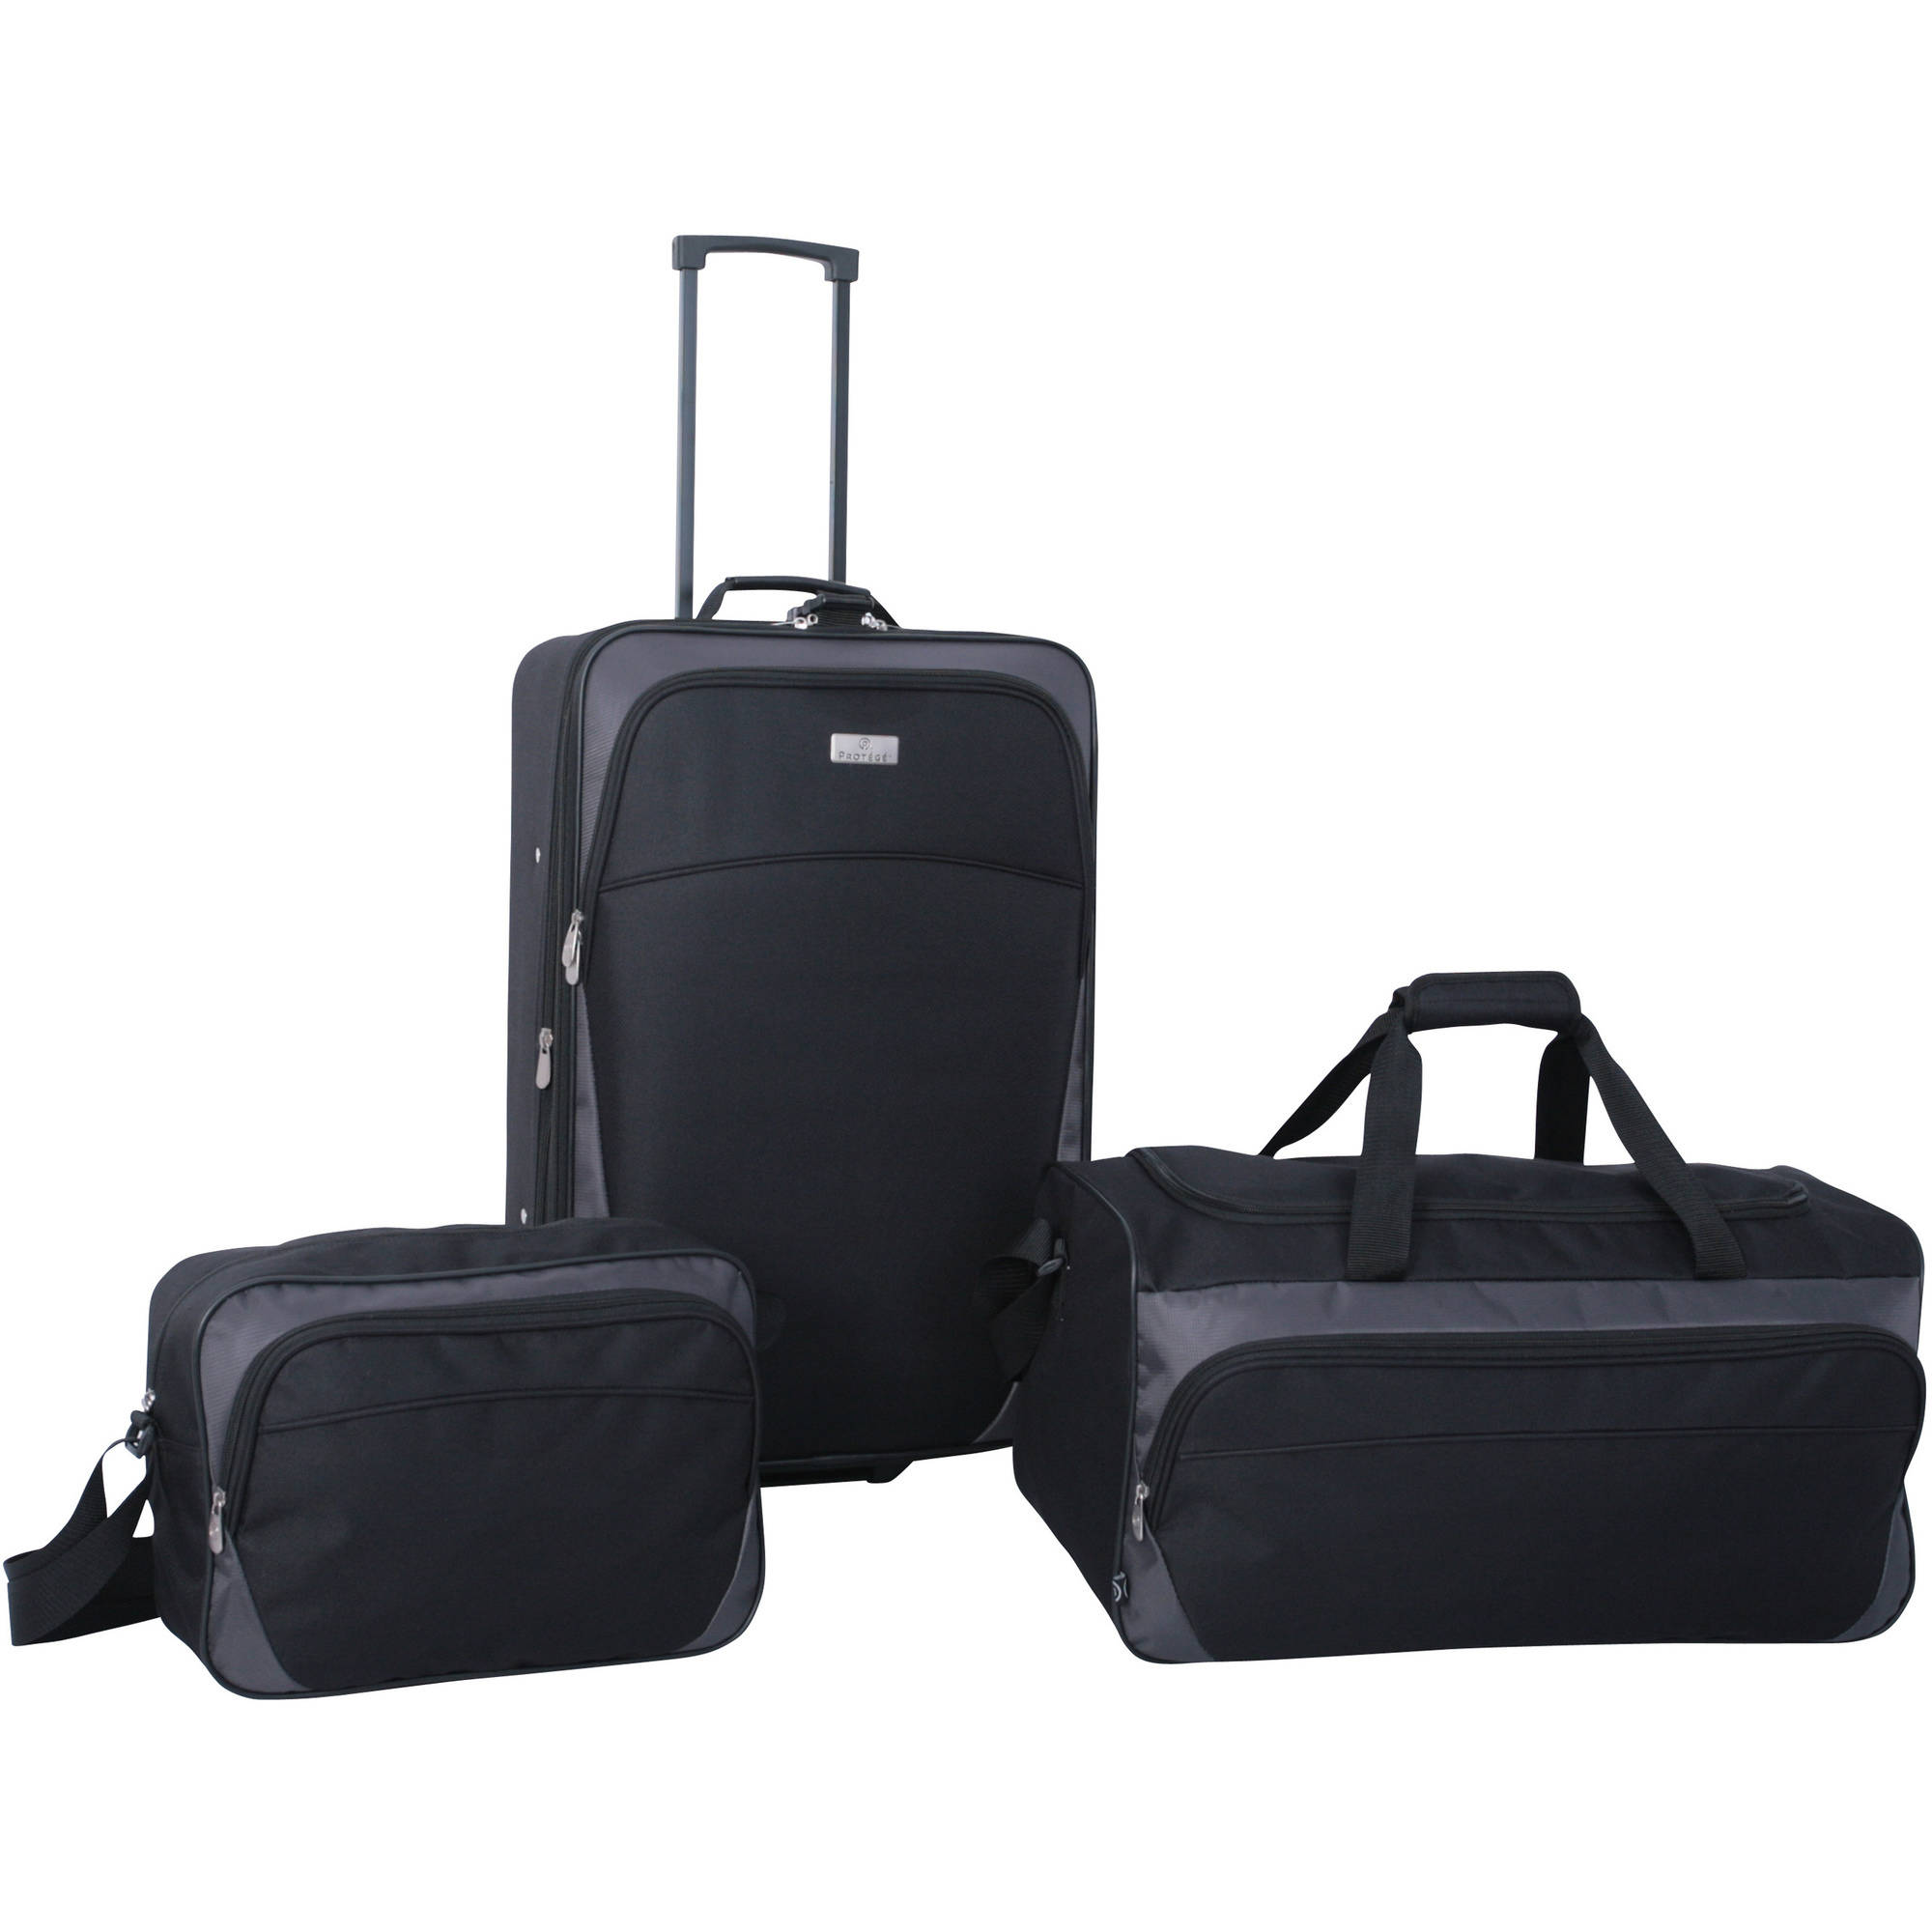 Protege 3-Piece Luggage Set, Black - Walmart.com